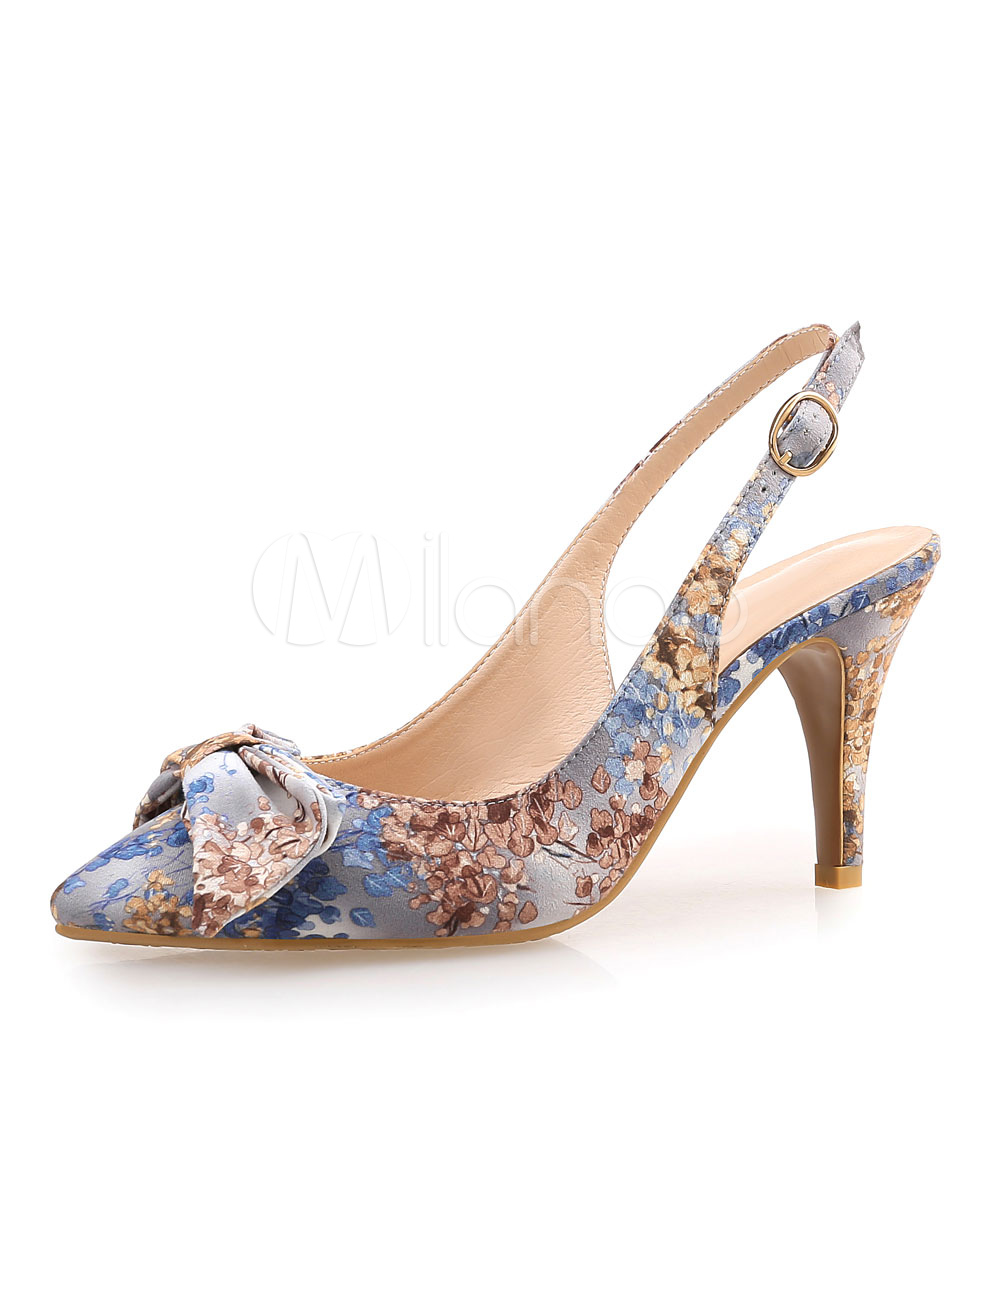 Buy Women's Evening Shoes Pointed High Heel Sandals Handmade Floral Print Stiletto Heel for $37.99 in Milanoo store